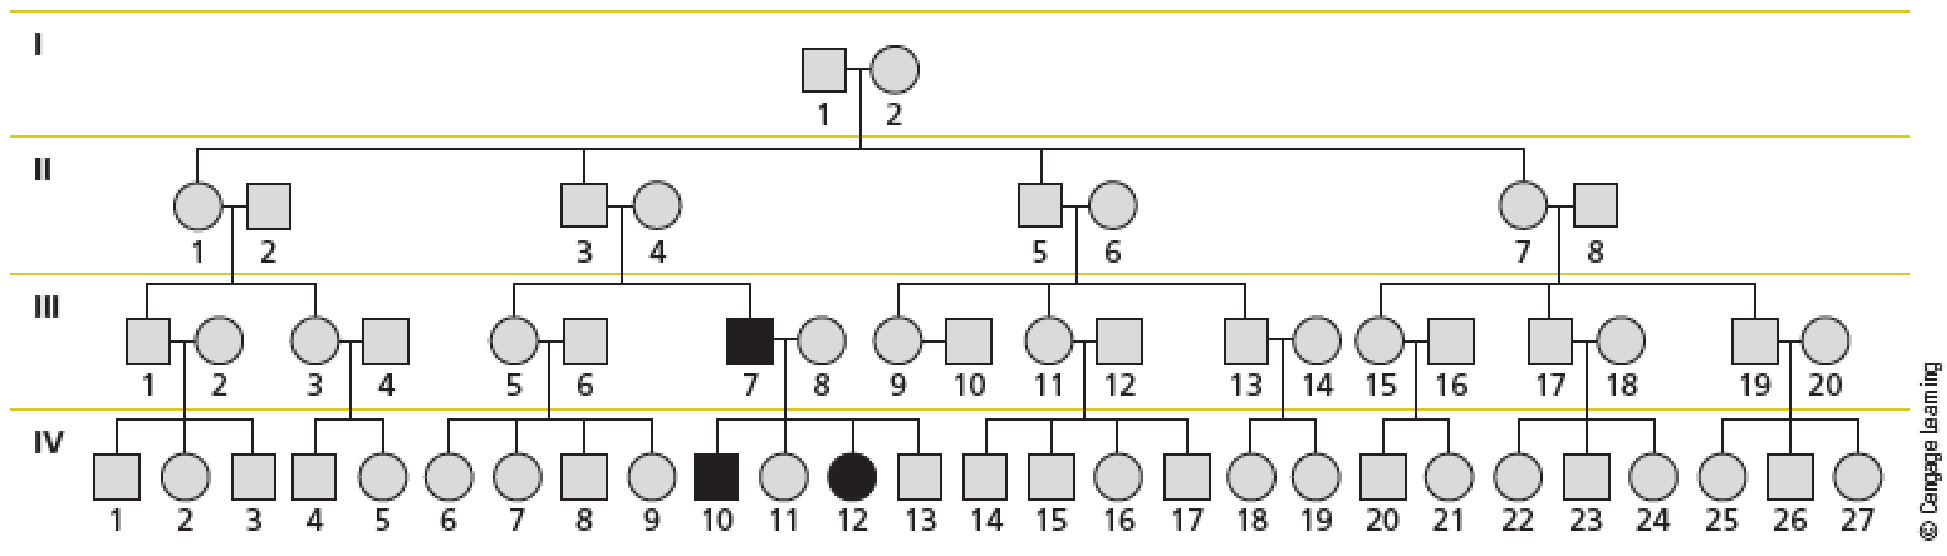 Chapter 11, Problem 16QP, Familial retinoblastoma, a rare autosomal dominant defect, arose in a large family that had no prior